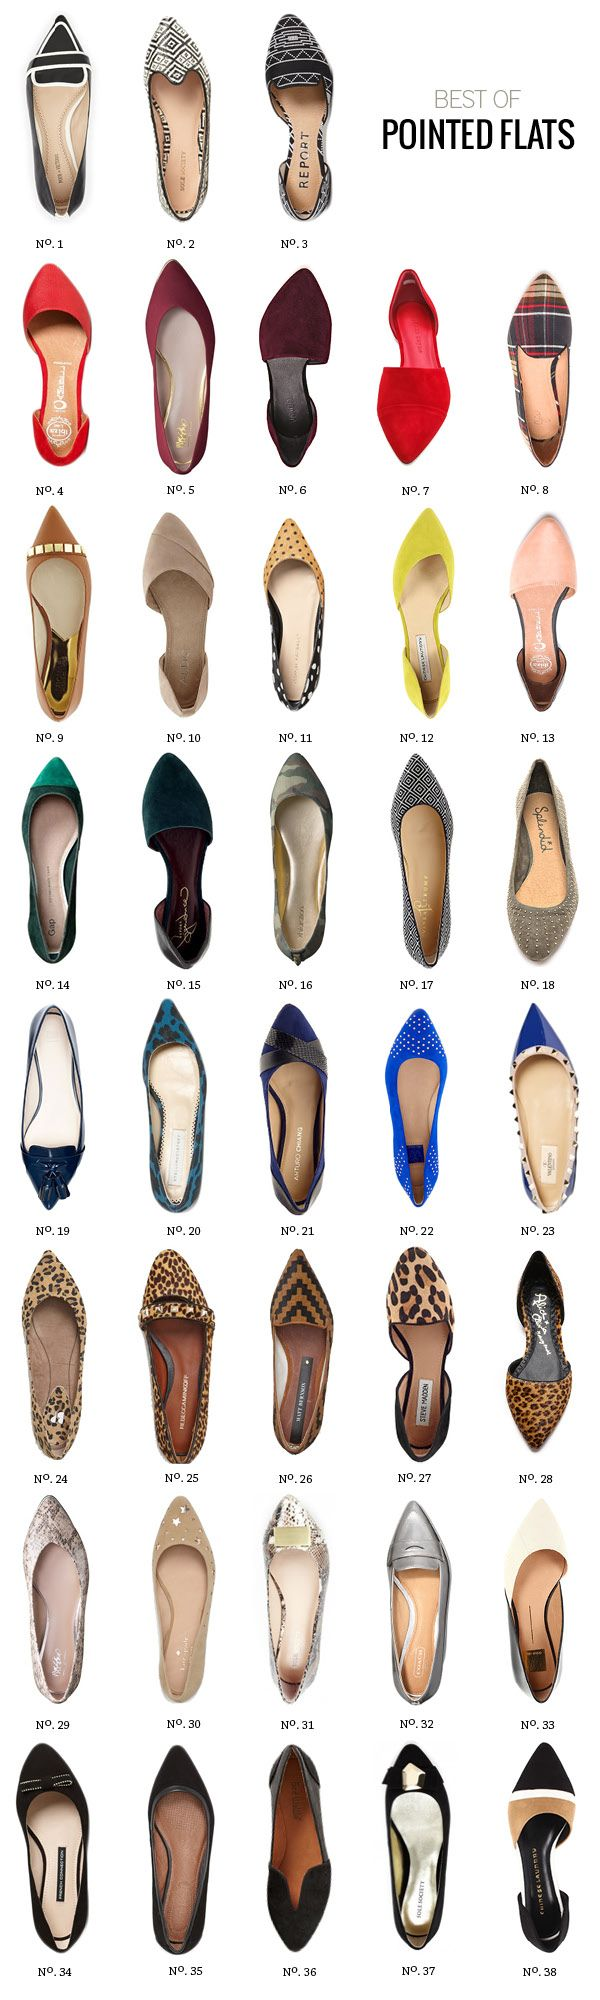 Best Of: Pointed Flats for Fall, and they're so cute!